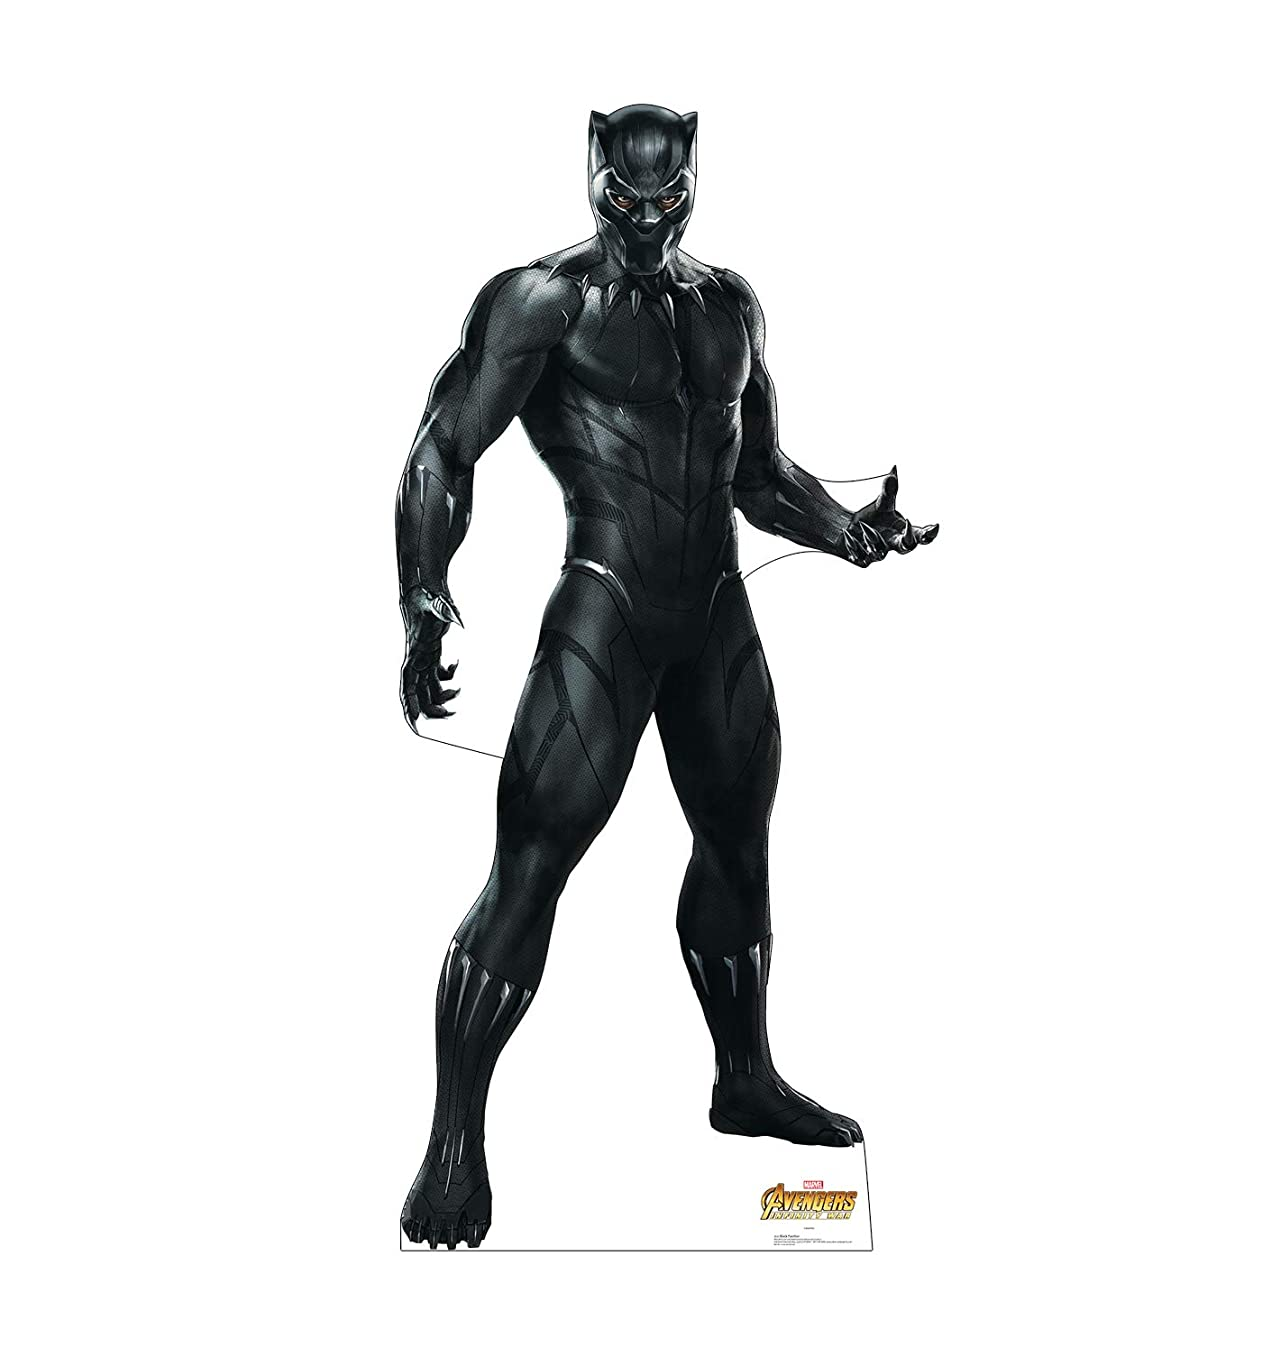 Advanced Graphics Black Panther Life Size Cardboard Cutout Standup - Marvel's Avengers: Infinity War (2018 Film)